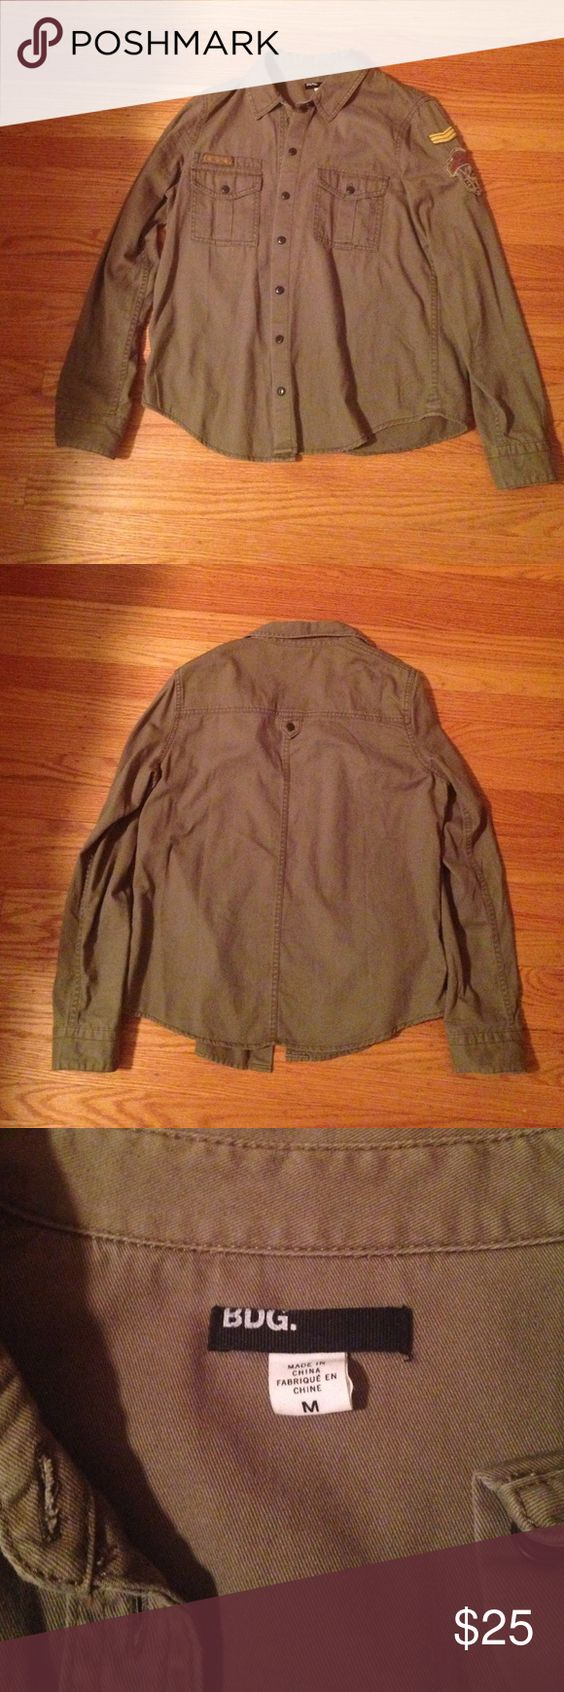 BDG Green Vintage Style Boy Scout Shirt BDG olive green vintage style military/boy scouts button-down shirt from Urban Outfitters. Really soft and comfortable. The tags have been removed but it's never been worn. BDG Tops Button Down Shirts